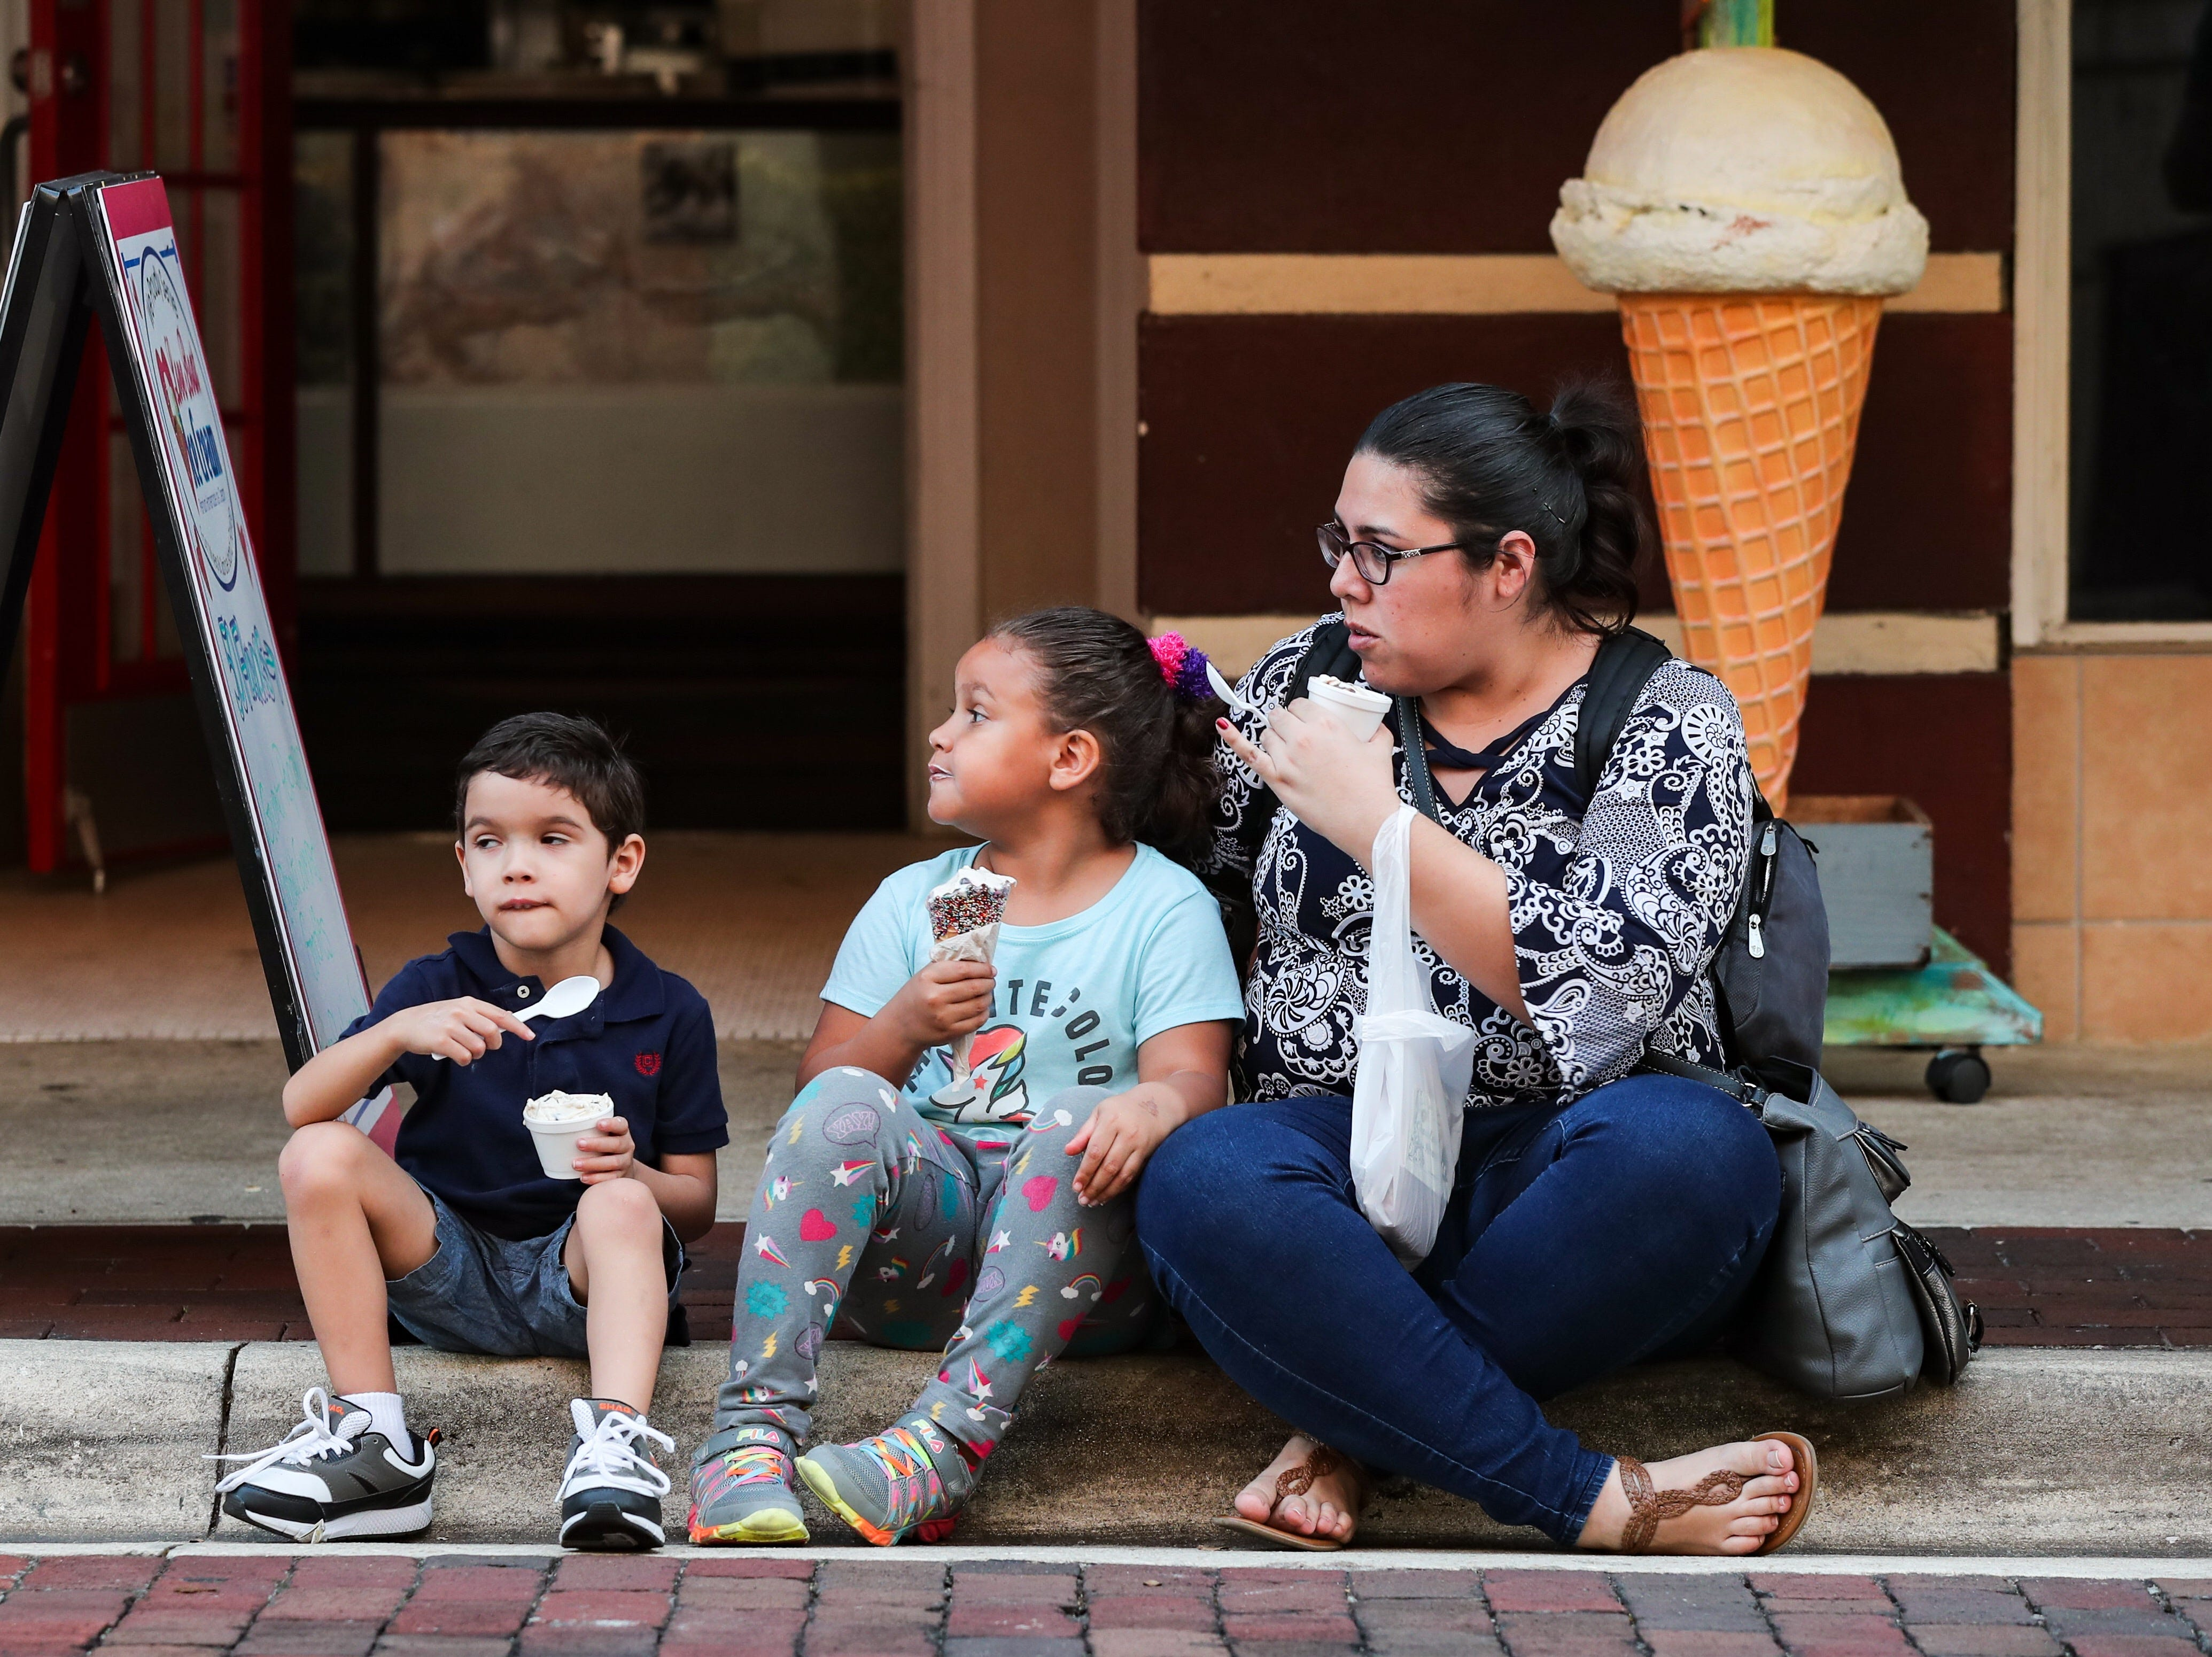 Cesar 4,  Victoria 5, and their mother Karla Hidilgo of Lehigh enjoy some ice cream. You showed up early for the Edison Festival of Lights Grand Parade in Downtown Fort Myers, Florida. What did you munch on while you waited for the parade to start?